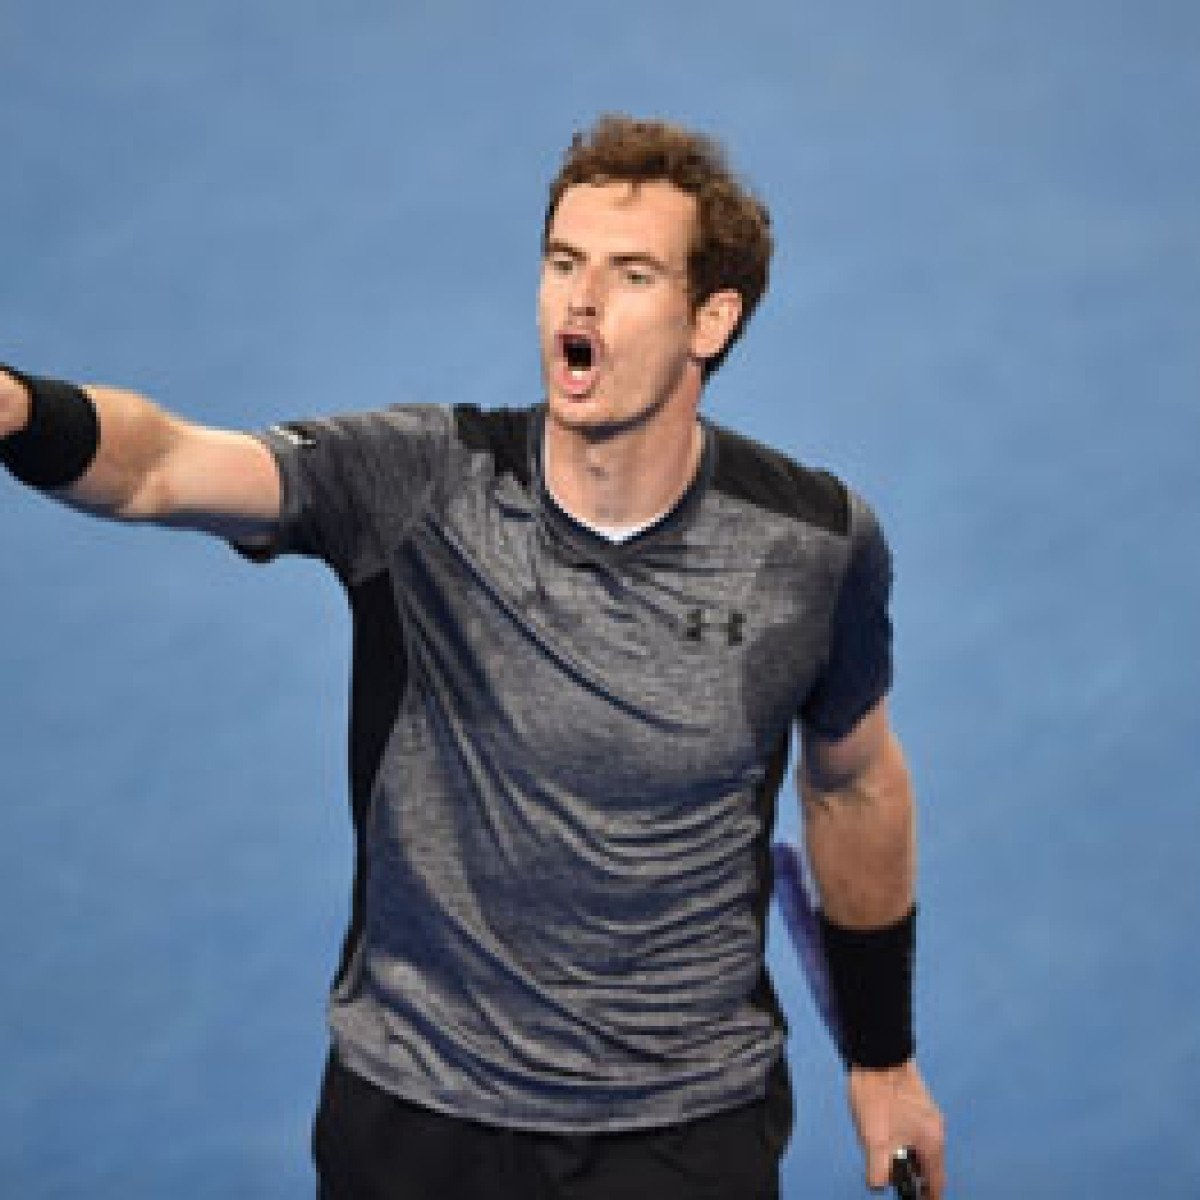 Andy Murray tests positive for COVID-19 before Australian Open